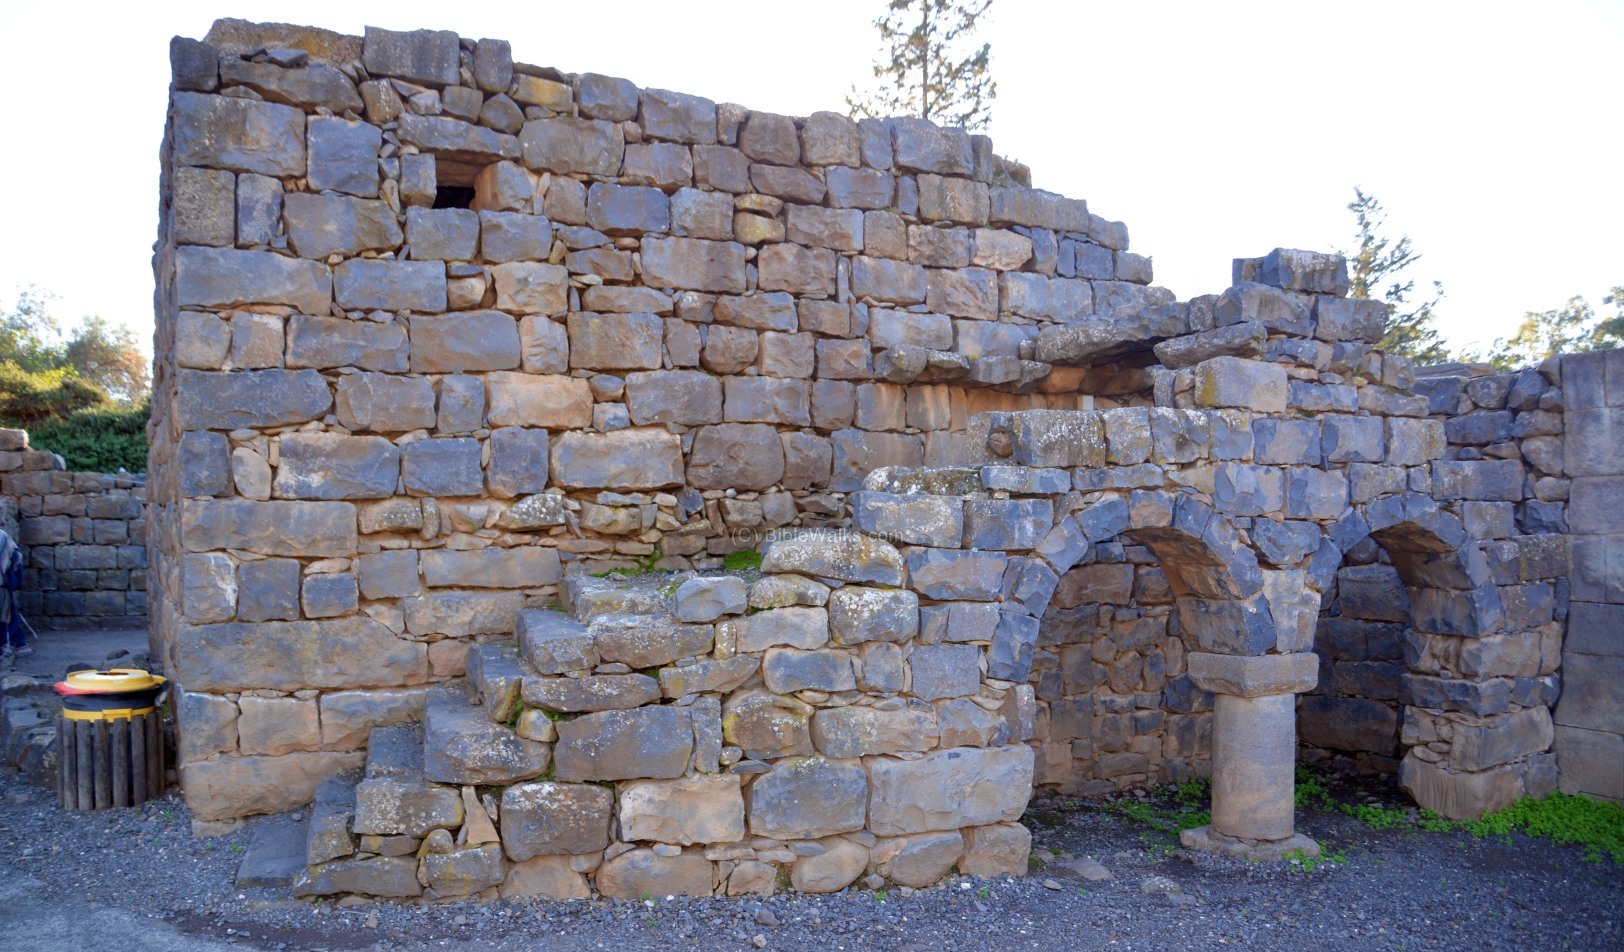 A restored stone house in the Talmudic village in Katzrin. Photo via BibleWalks.com